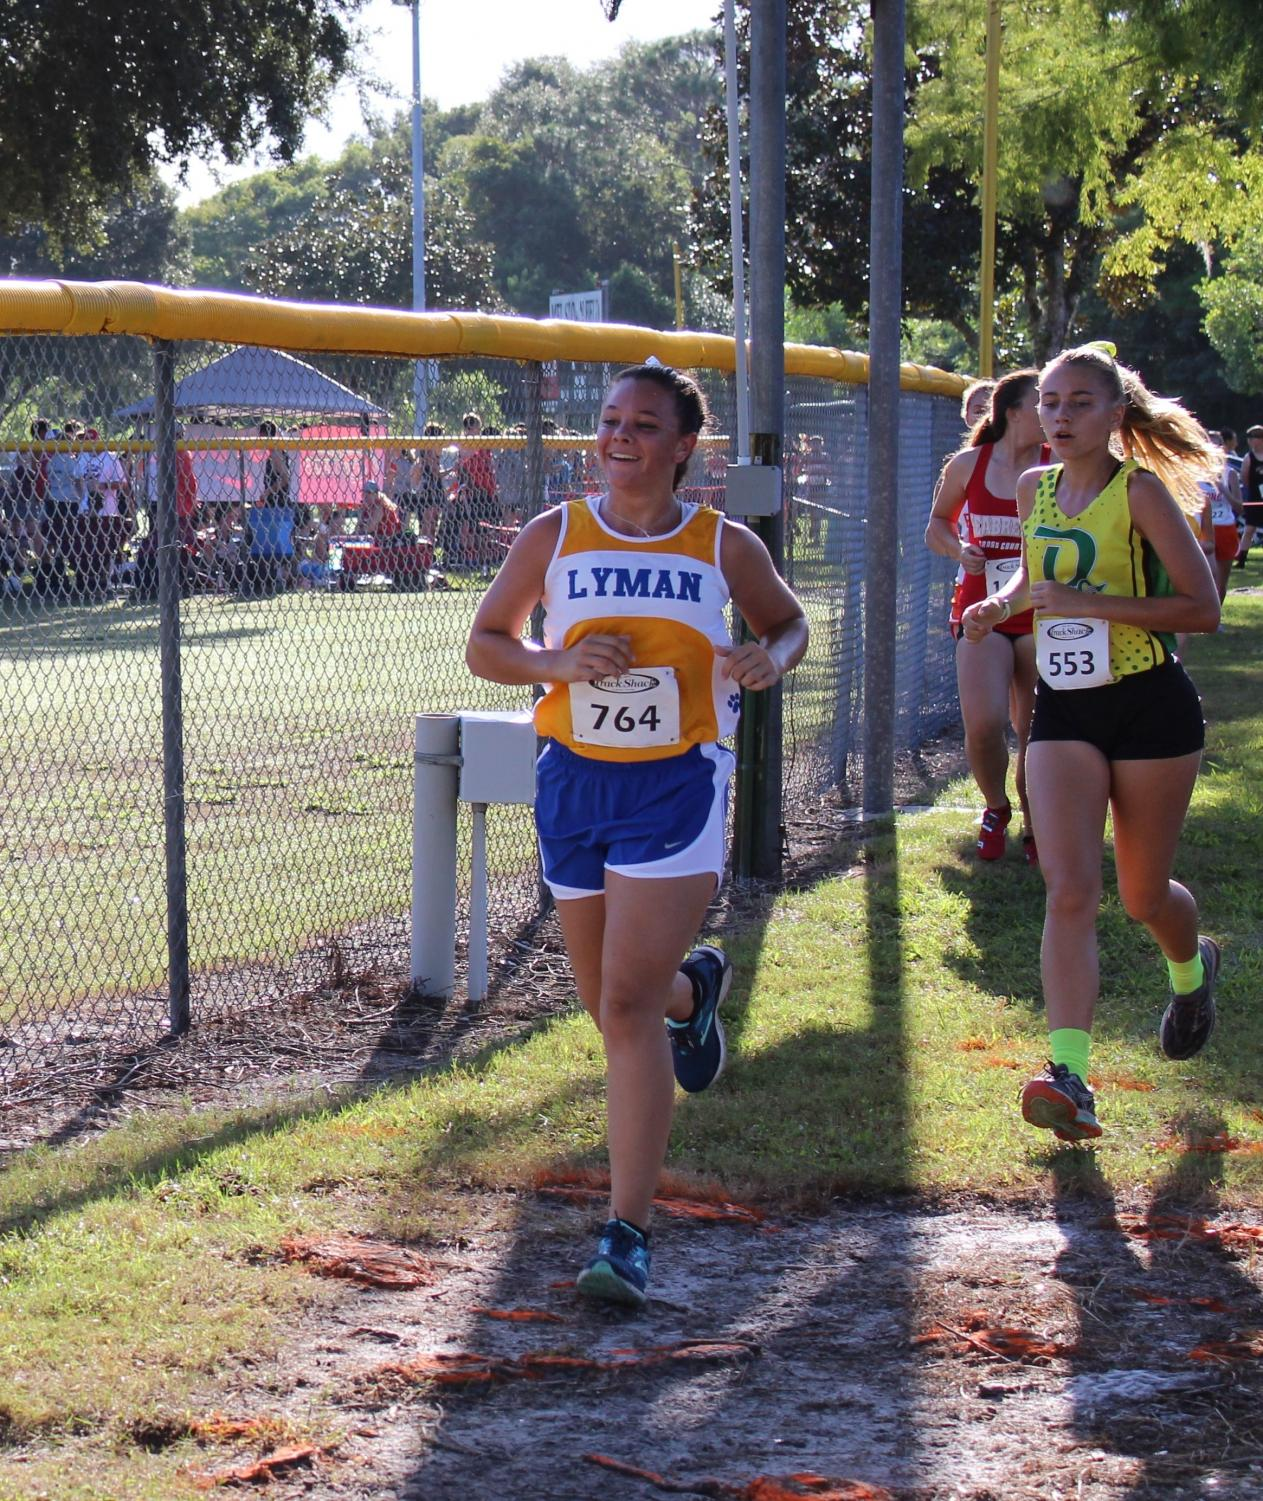 Emily Shilson ran with a time of 27:01 at her first race in Deland as a JV runner, and has since been promoted to the Varsity team.